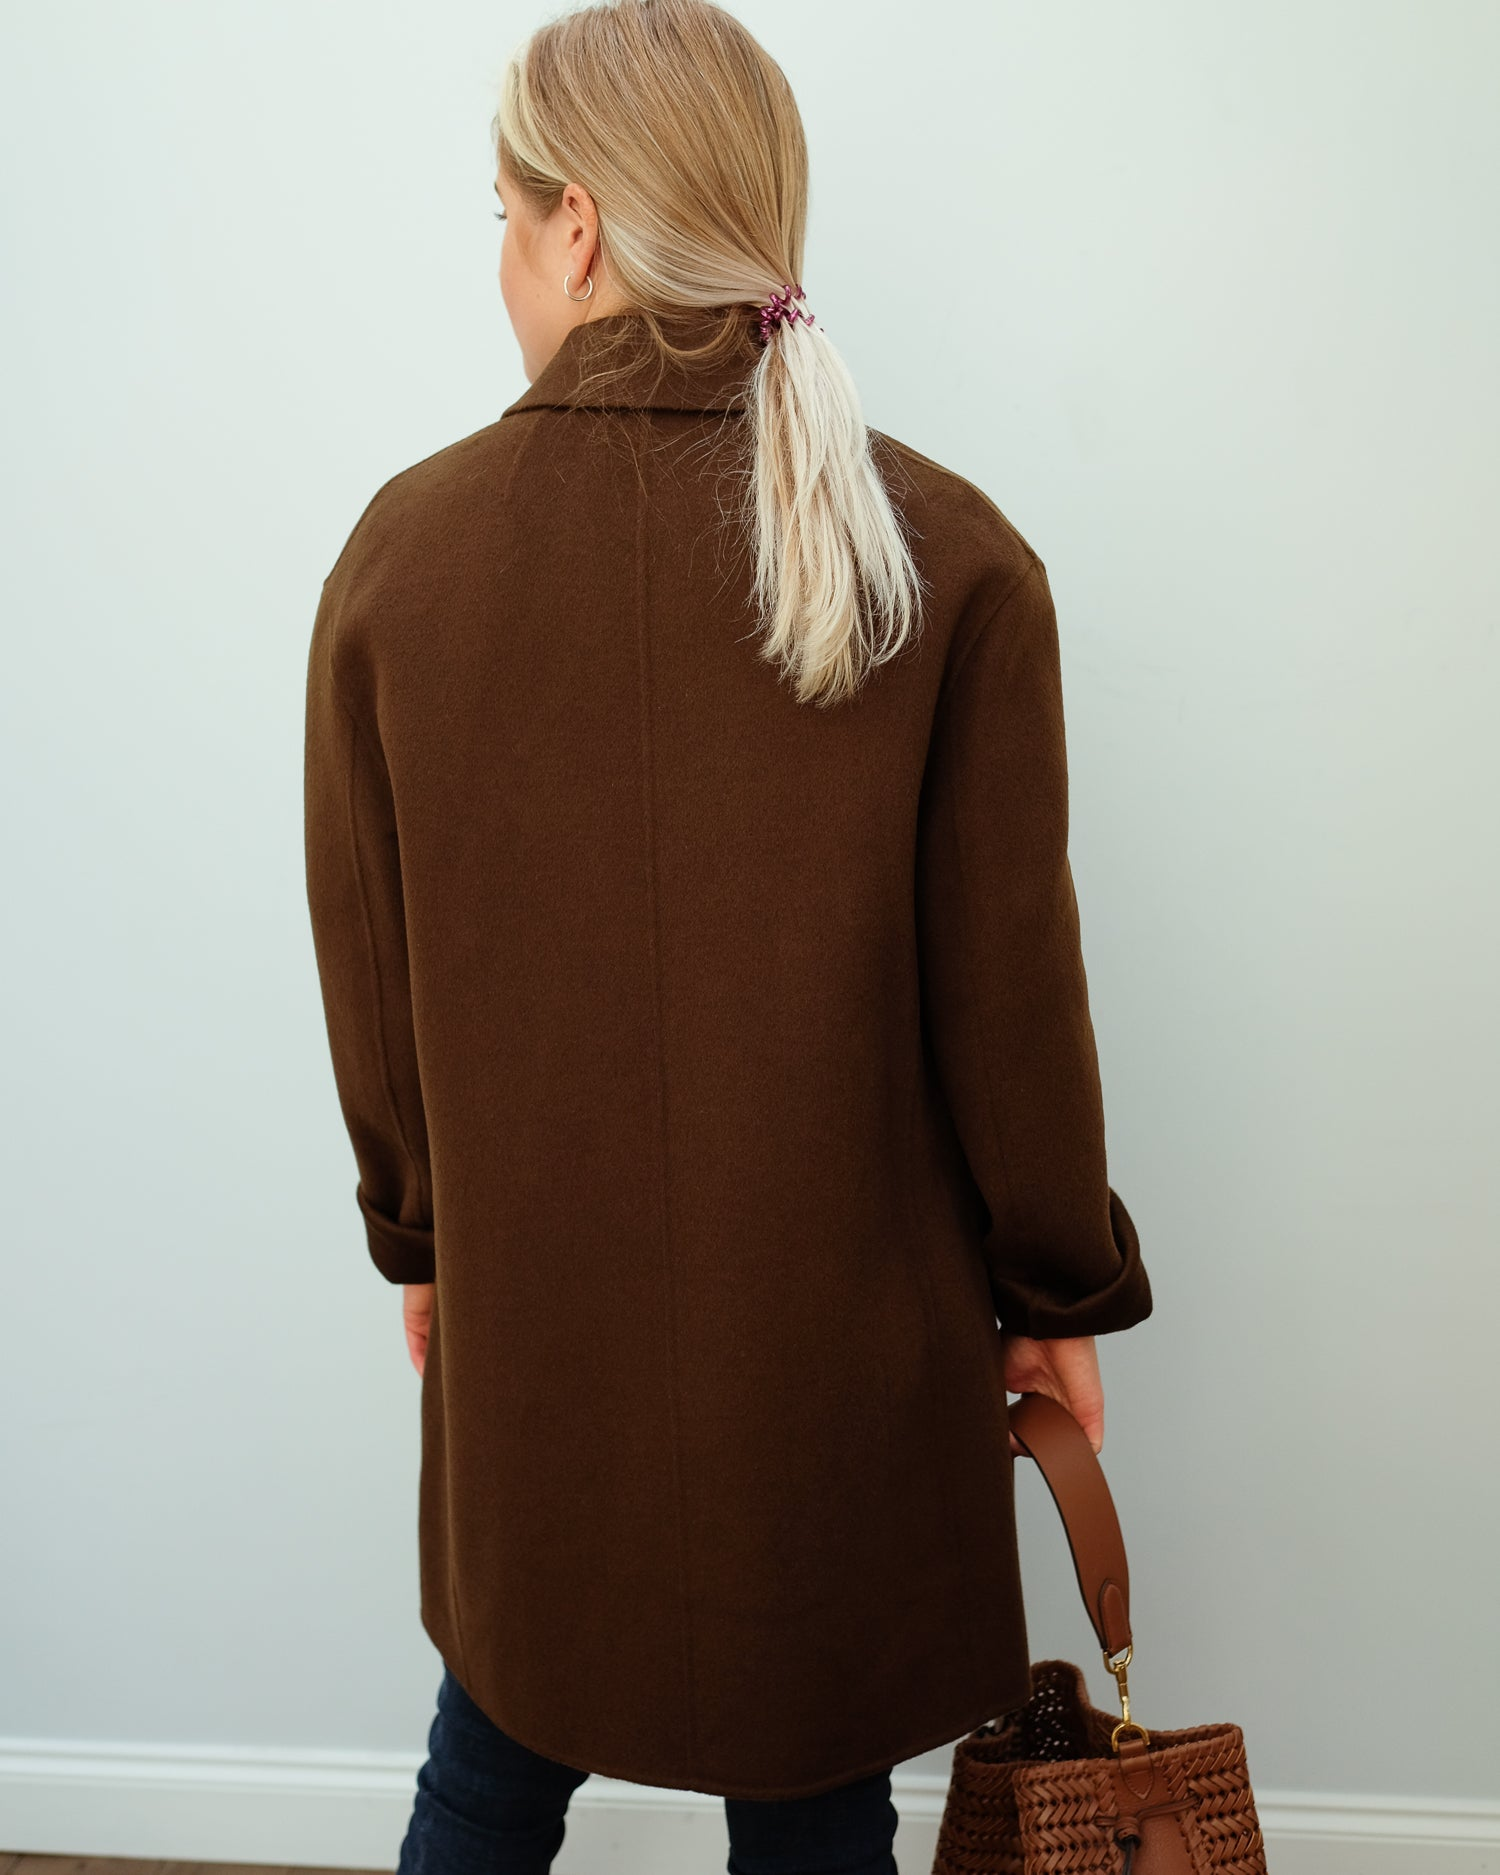 JOSEPH Clavel double face cashmere coat in moss